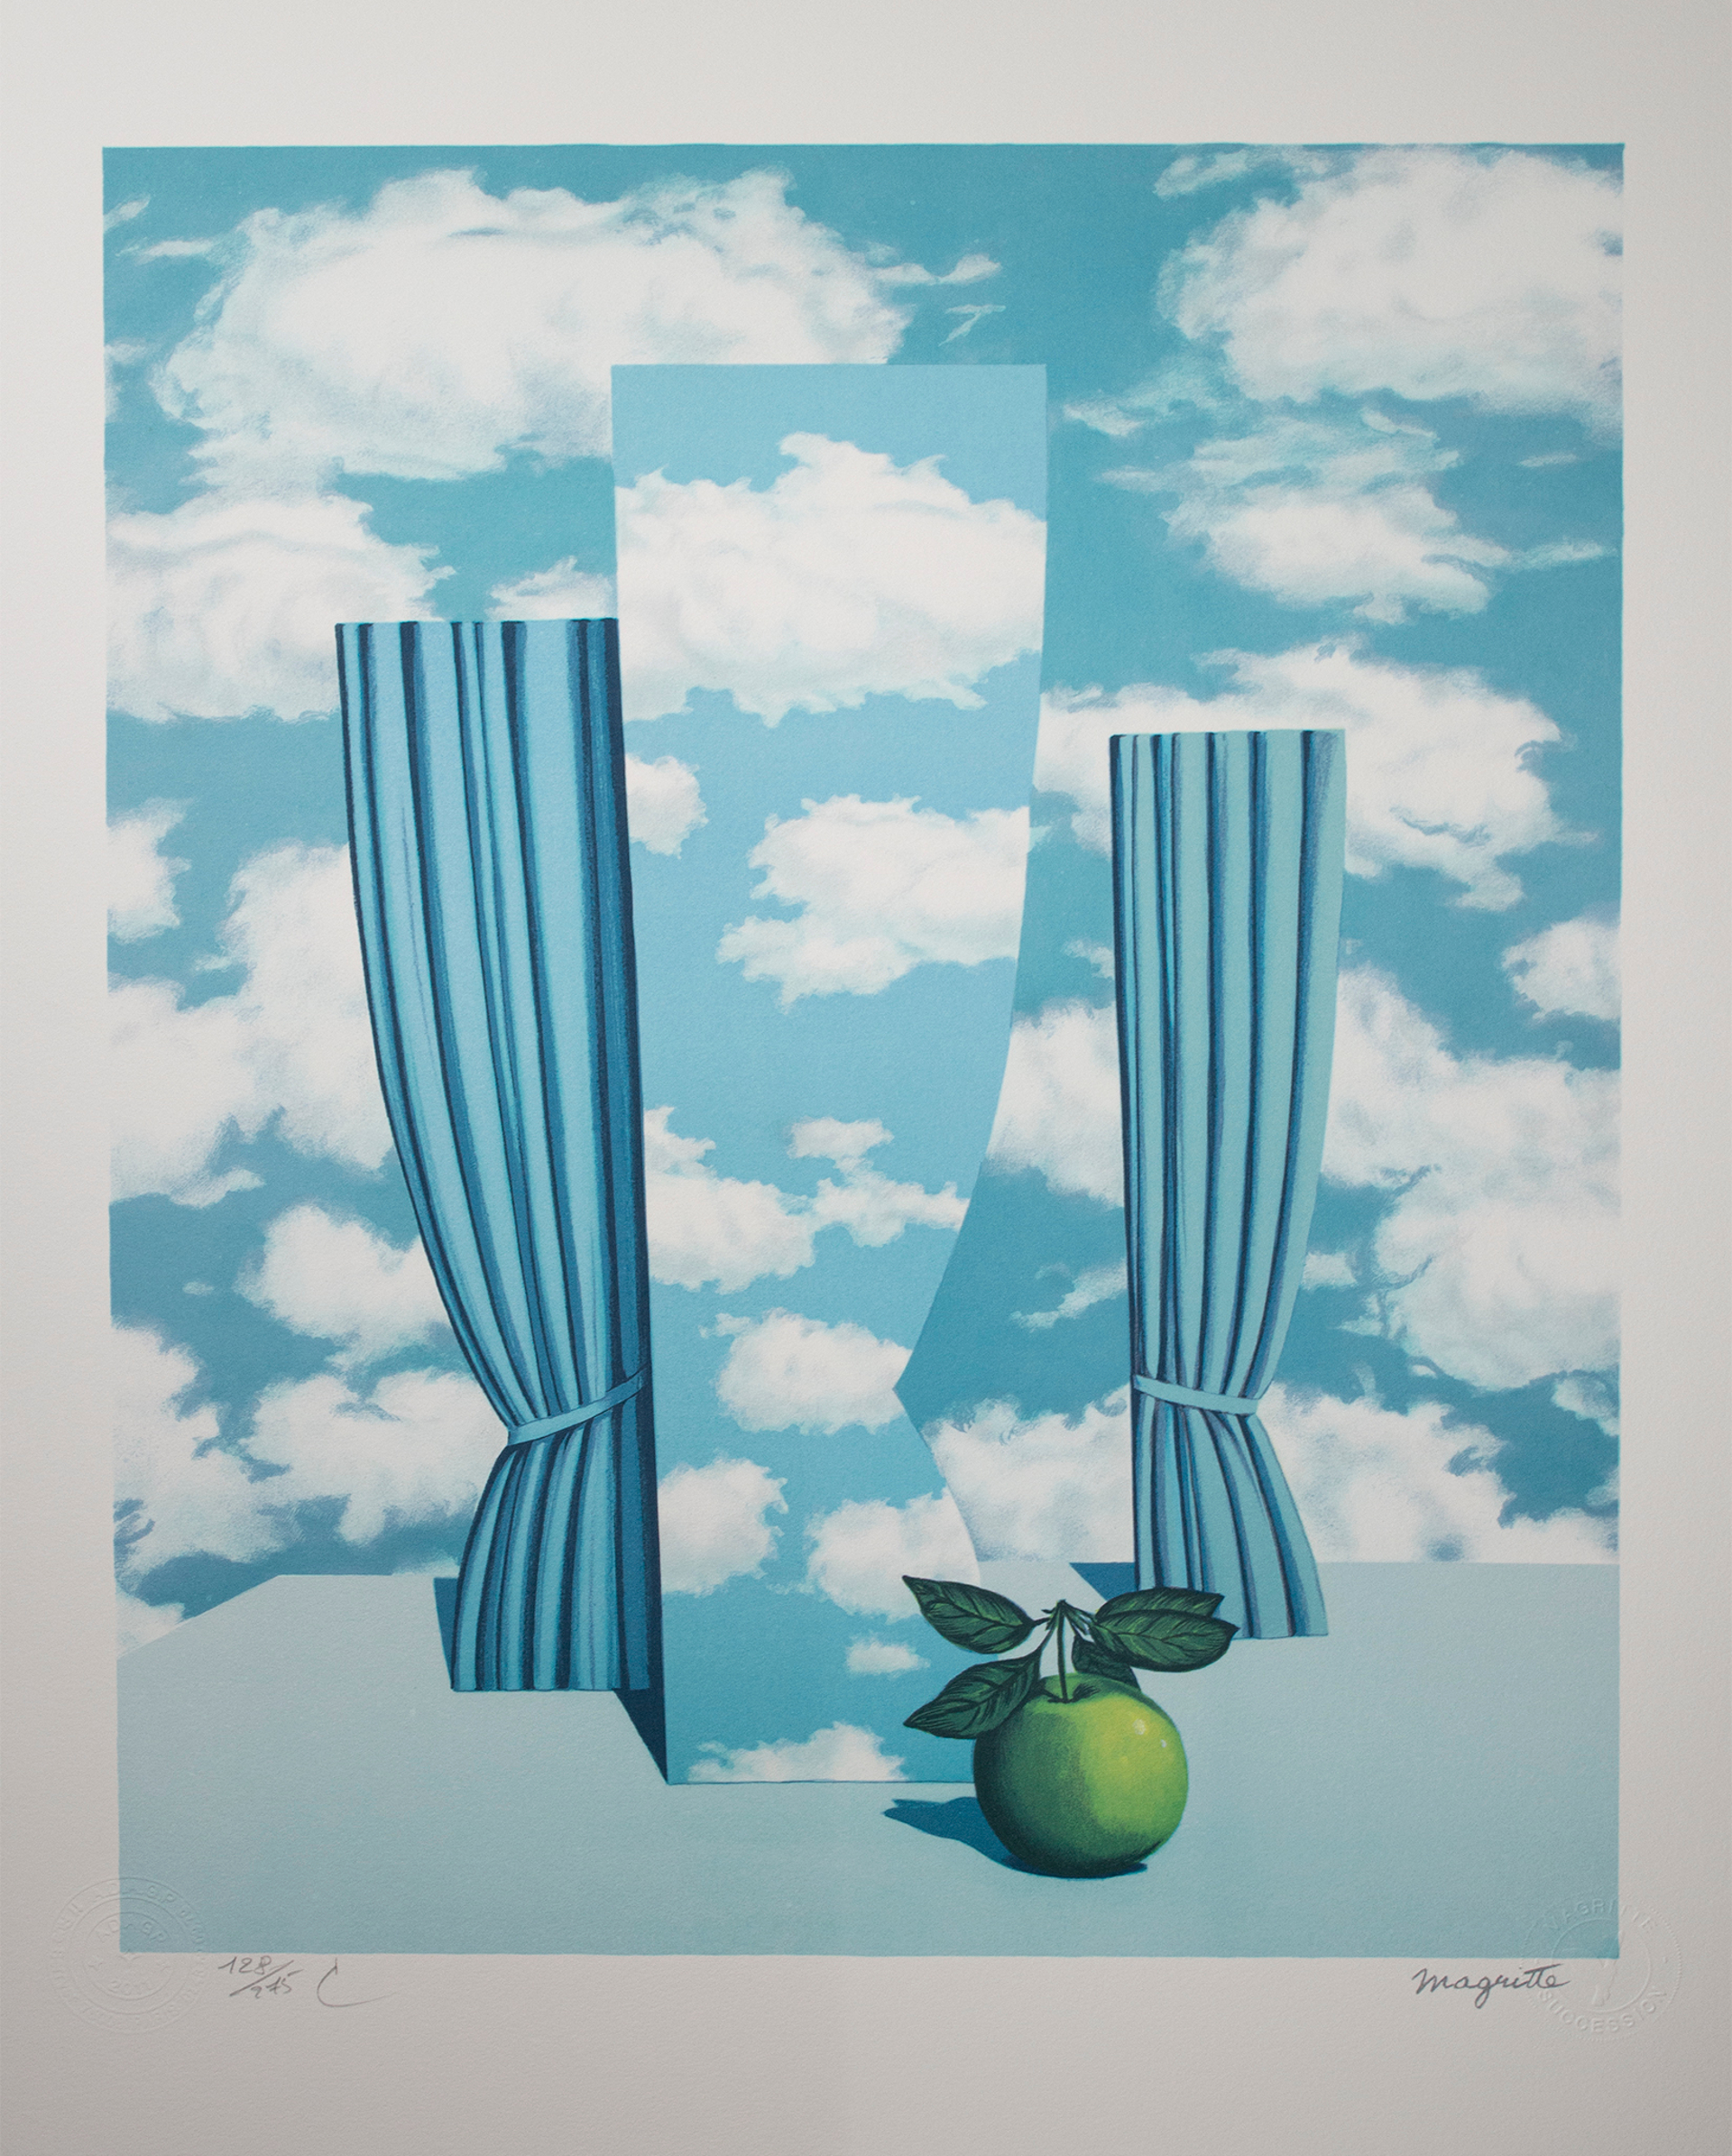 Le Beau Monde (High Society) by Rene Magritte